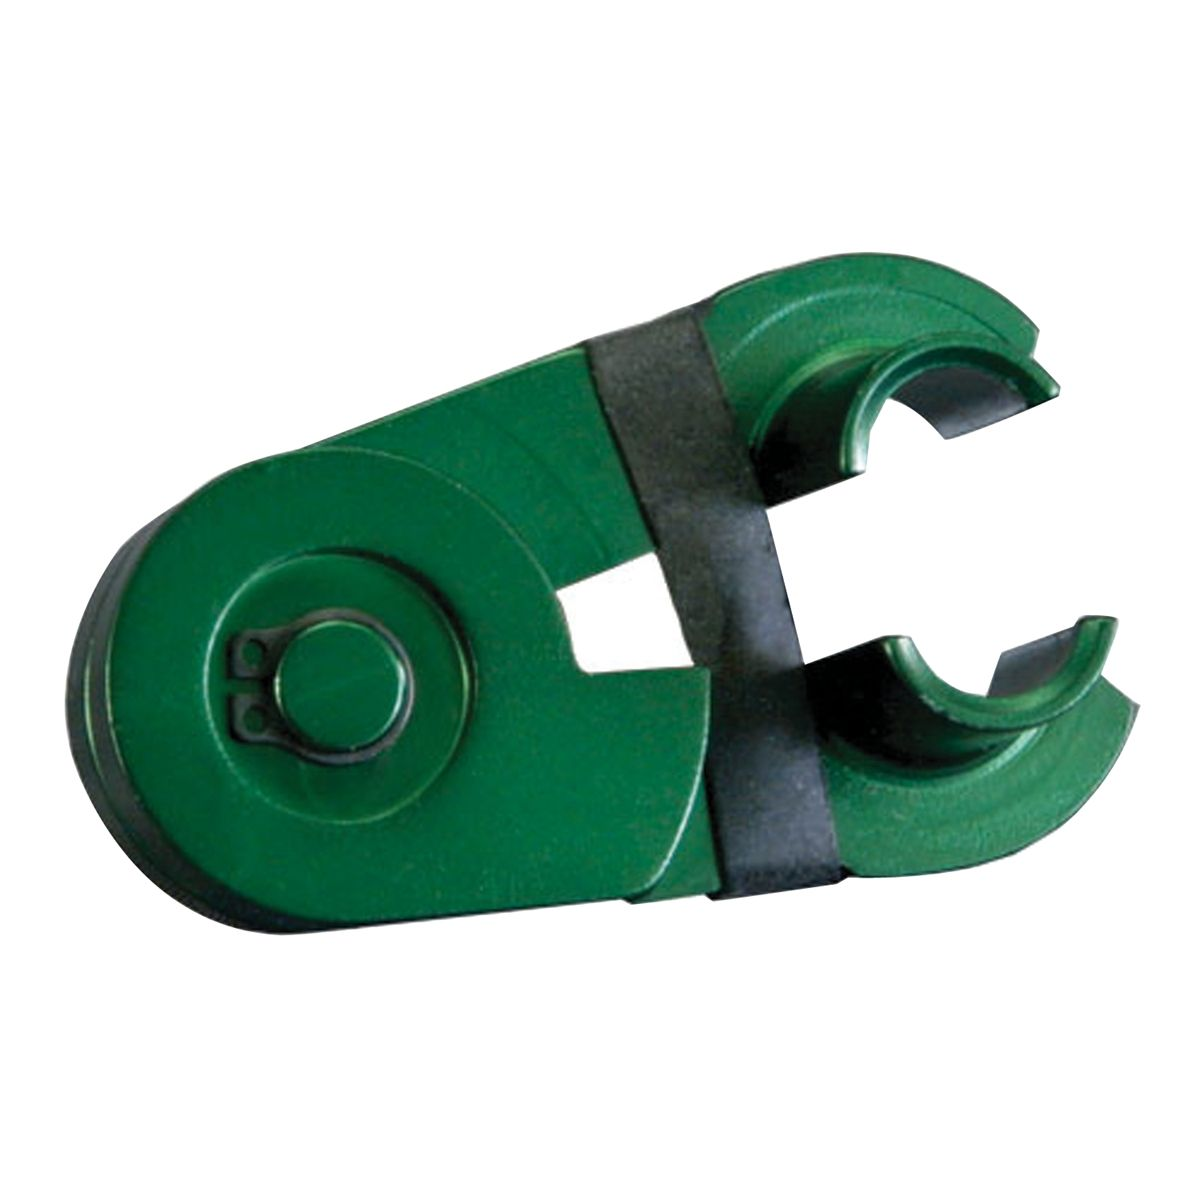 hight resolution of fuel filter quick disconnect tool